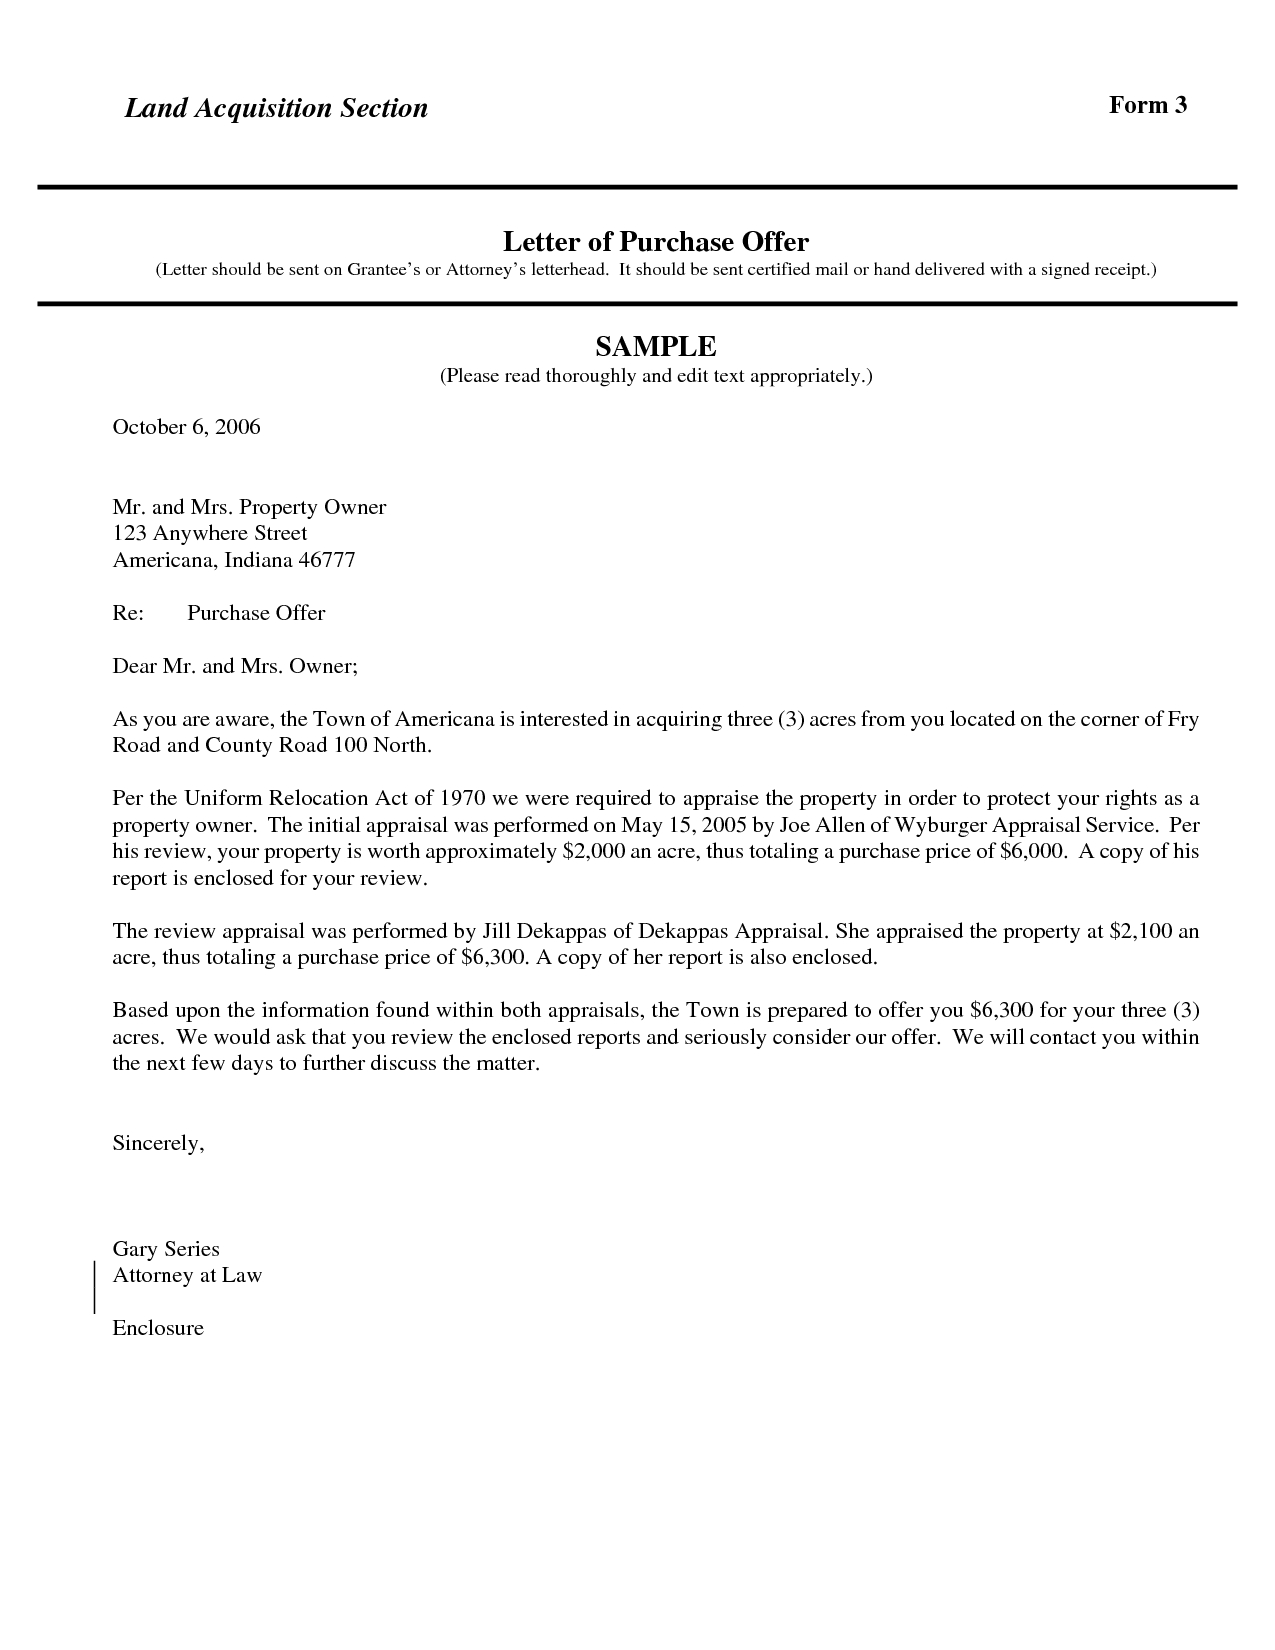 Letter Of Intent to Purchase Land Template Samples | Letter